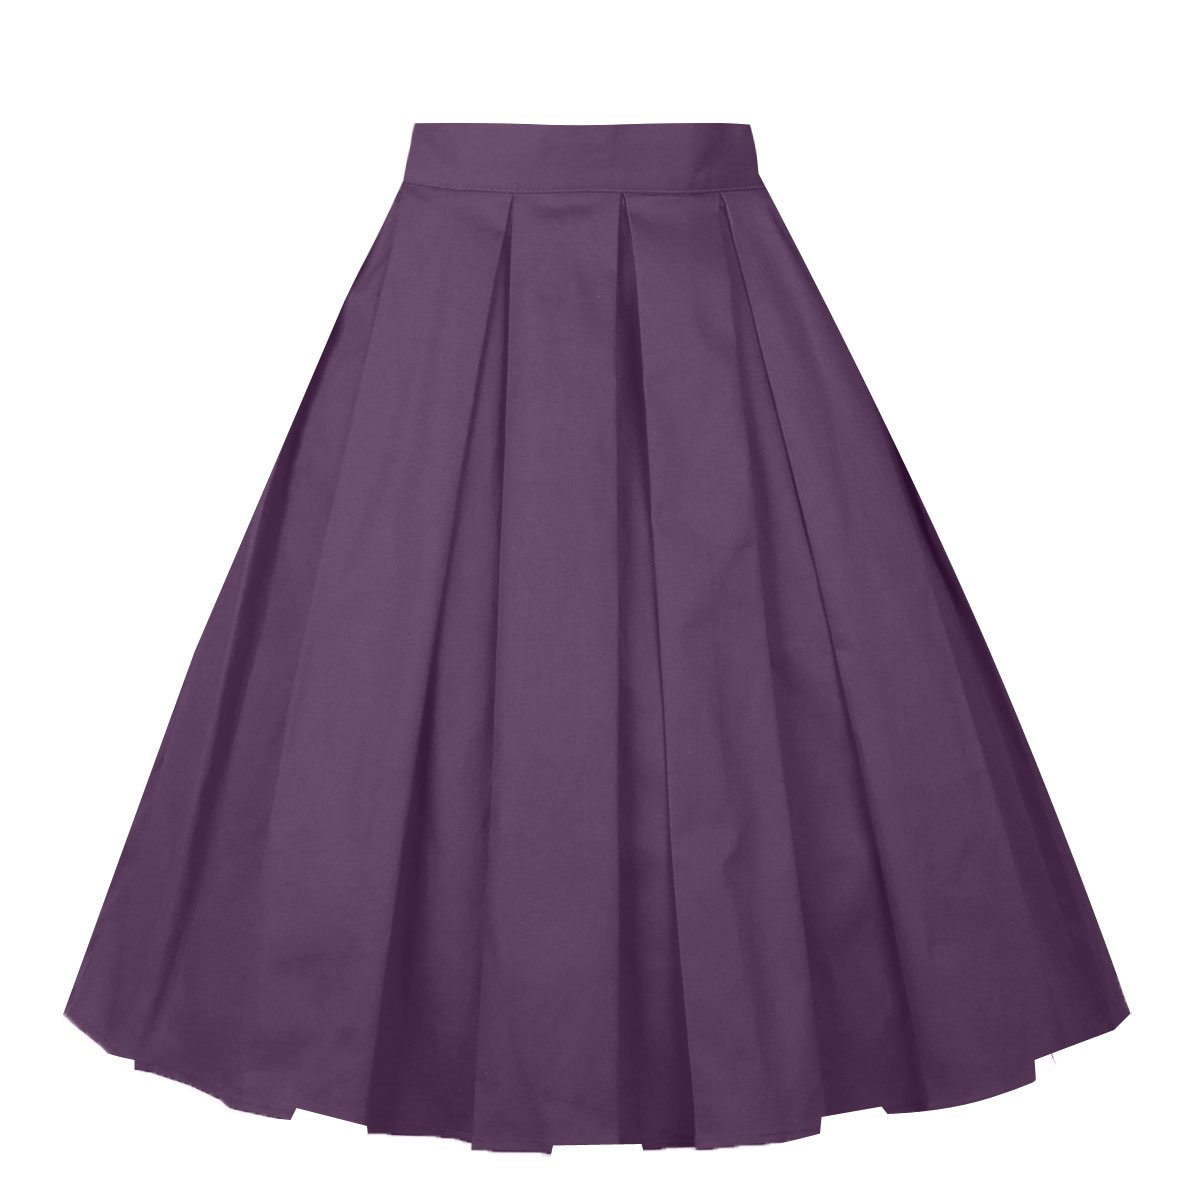 Girstunm Women's Pleated Vintage Skirt Floral Print A-Line Midi Skirts with Pockets Deep-Purple XXX-Large